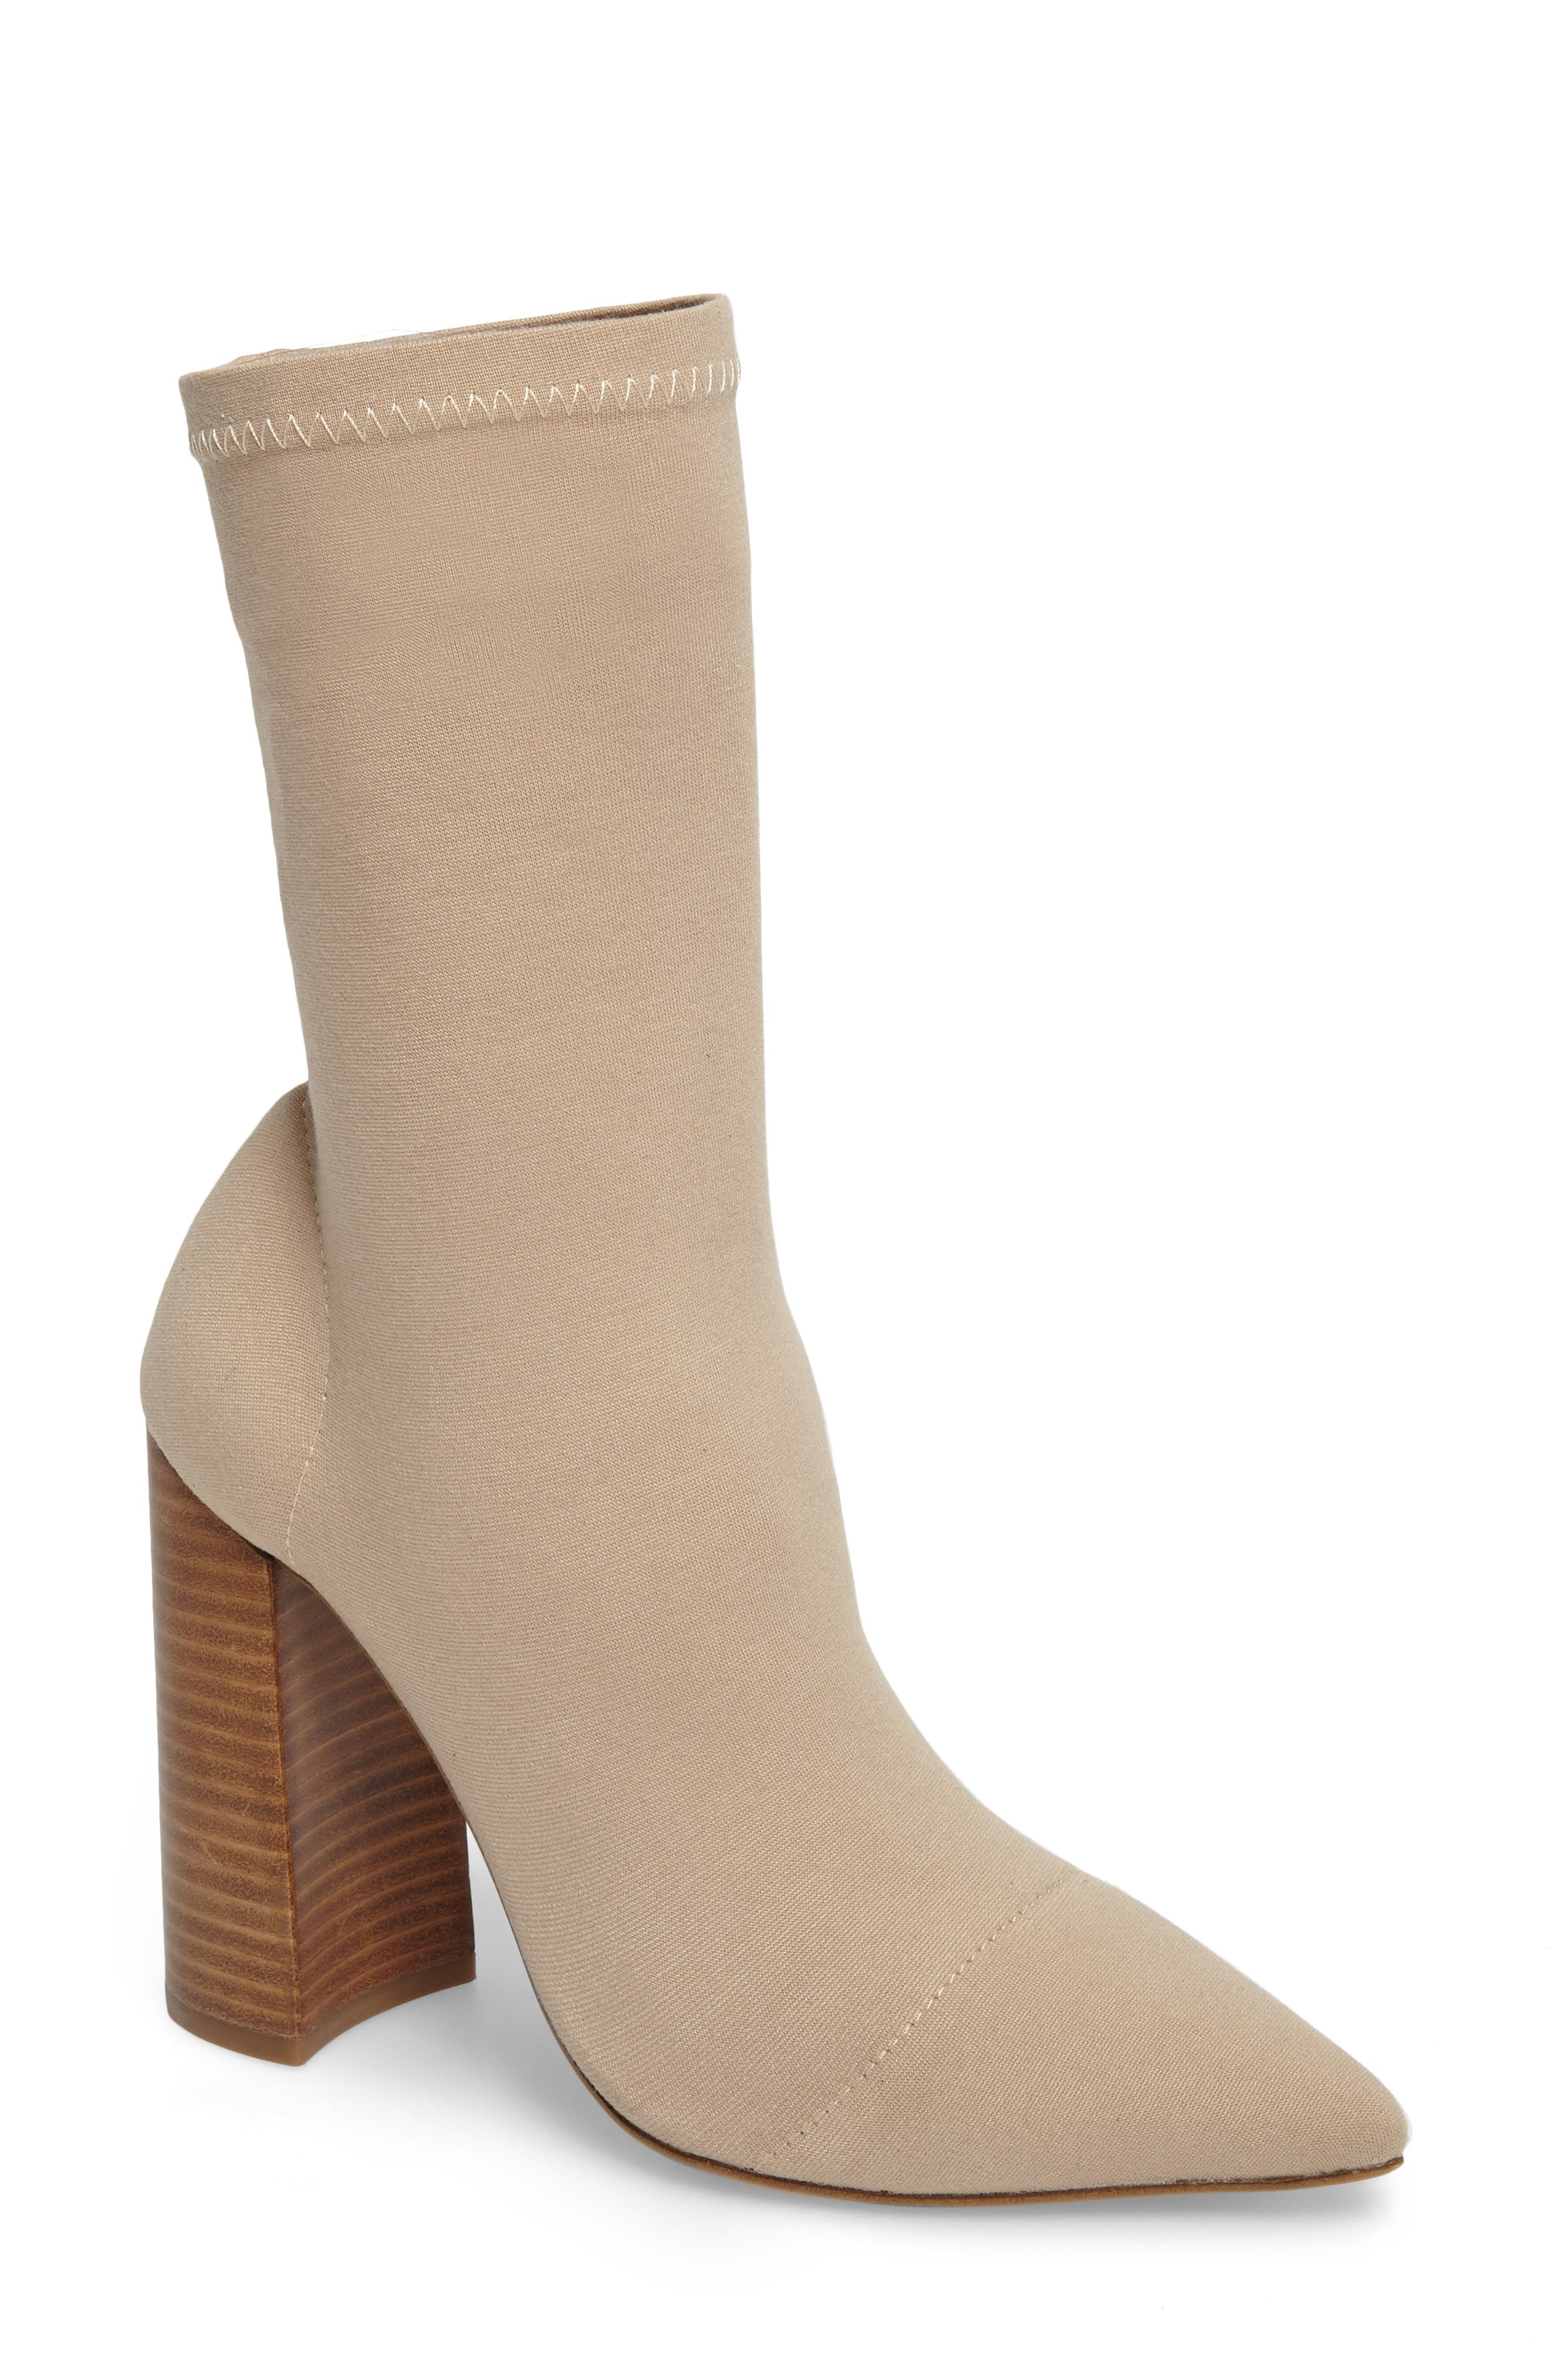 Diddy Velvet Bootie,                             Main thumbnail 1, color,                             270